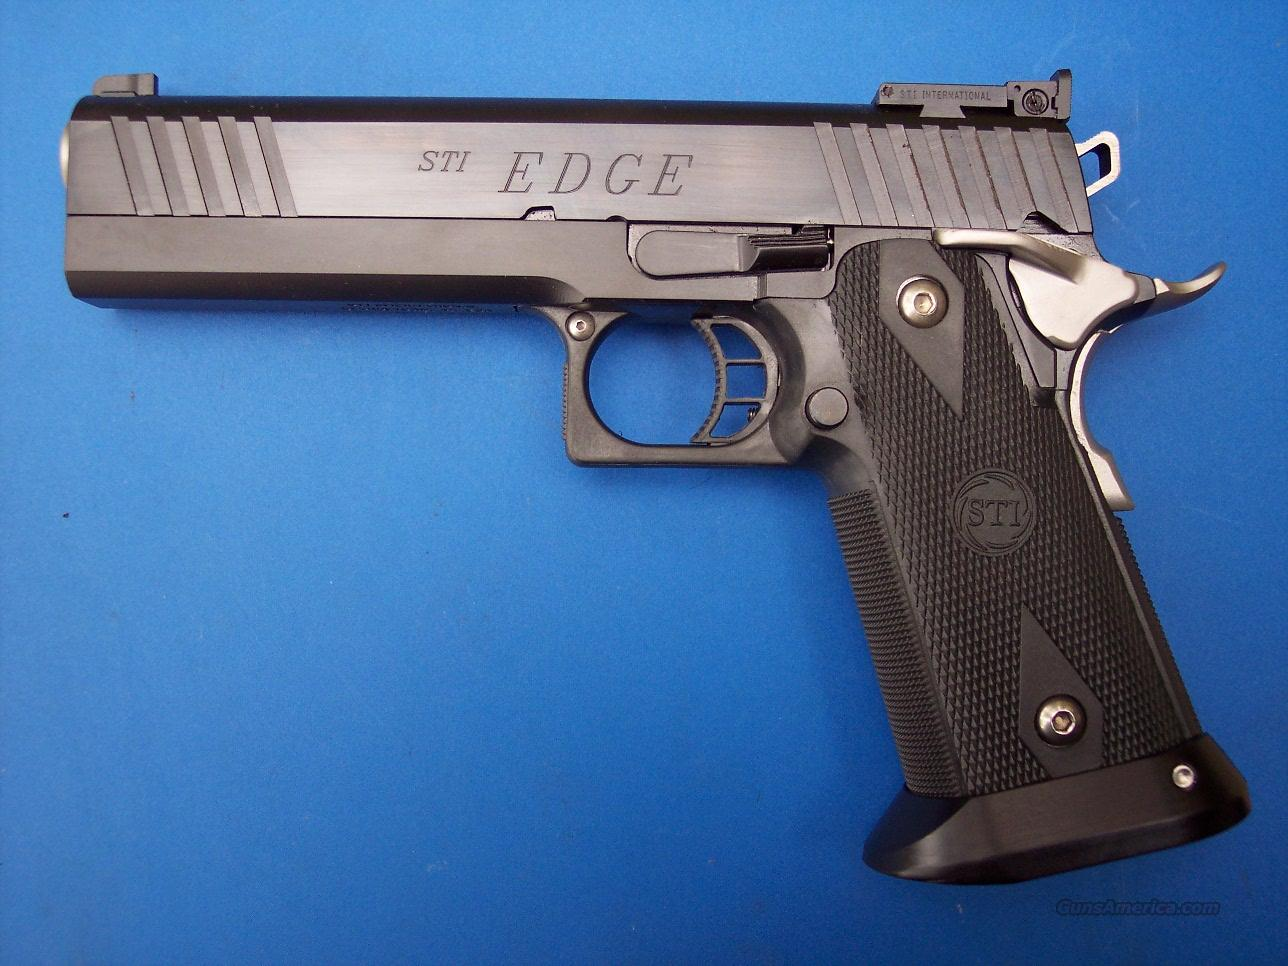 STI Edge 40 S&W *NEW* 2011  Guns > Pistols > STI Pistols